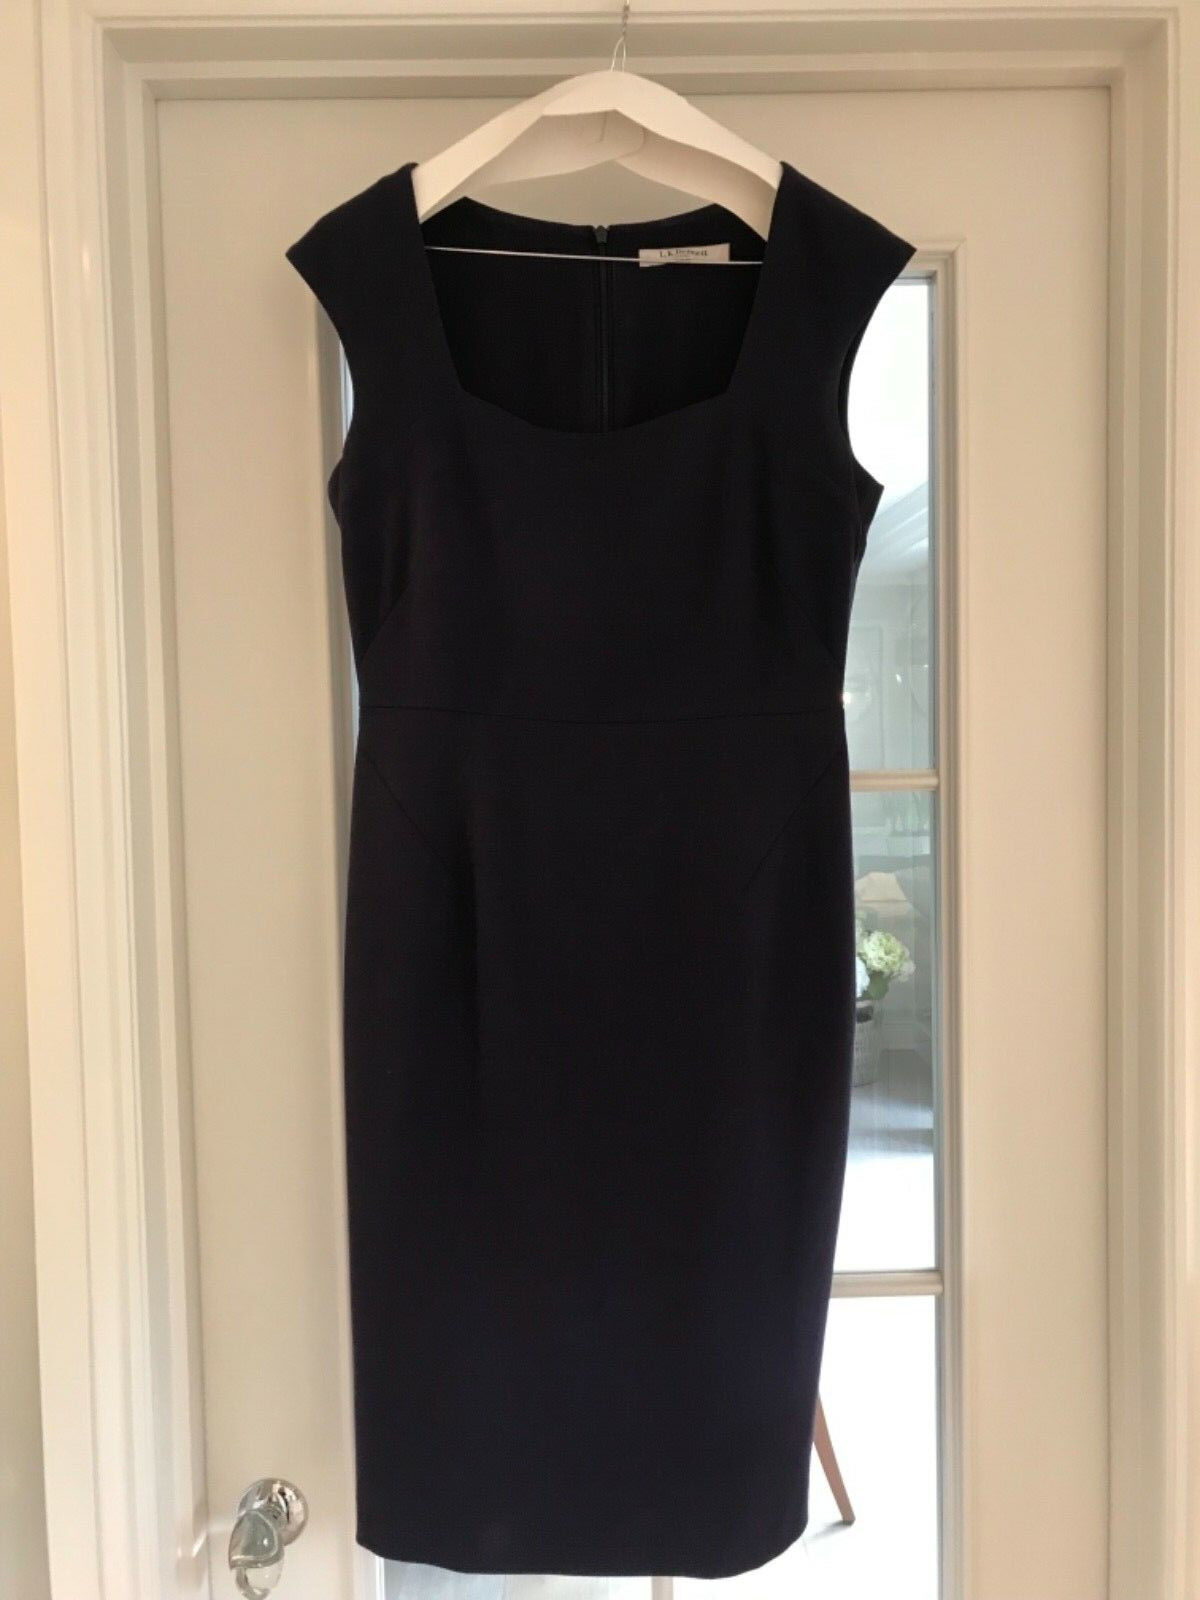 L K Bennet Dress Size 12